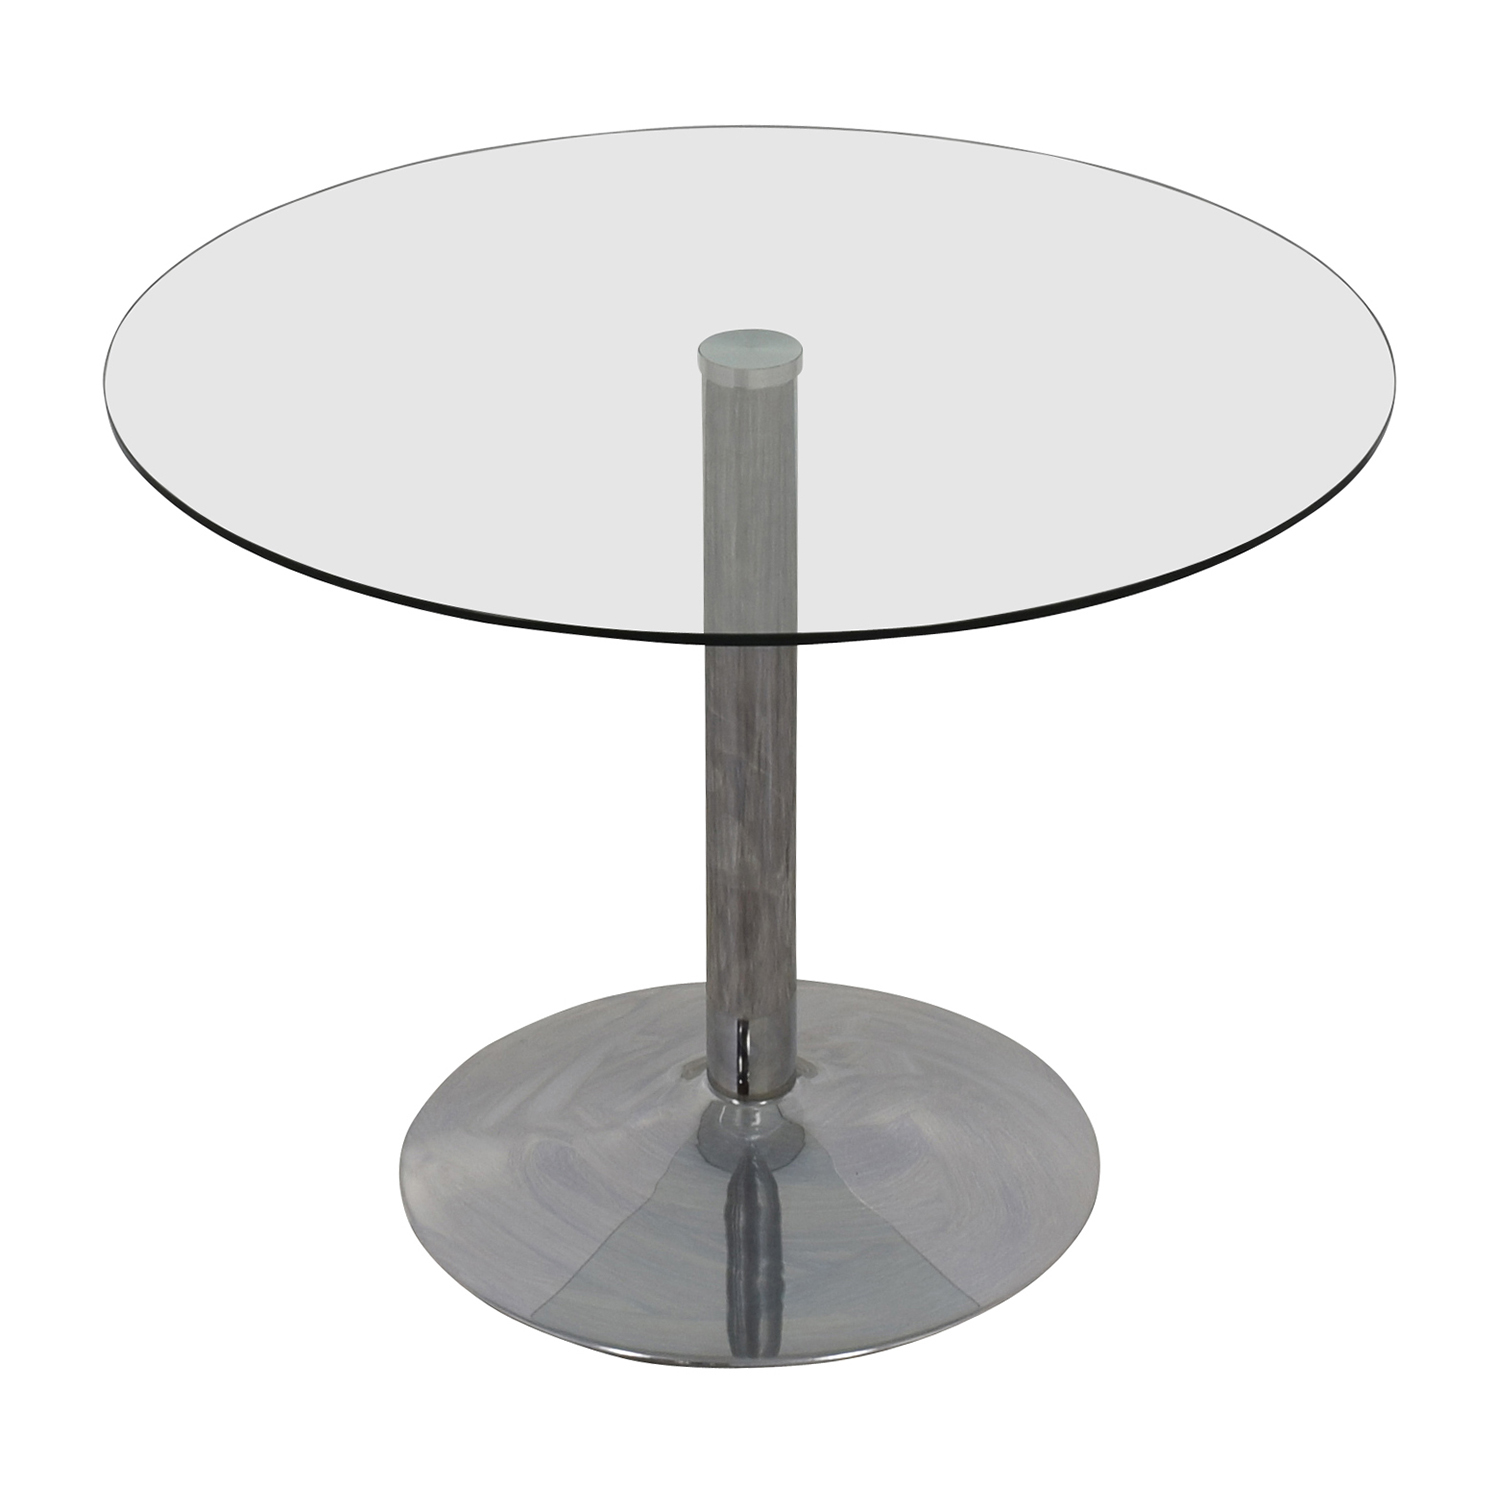 Dot & Bo Dot & Bo Lucent Round Cafe Table used